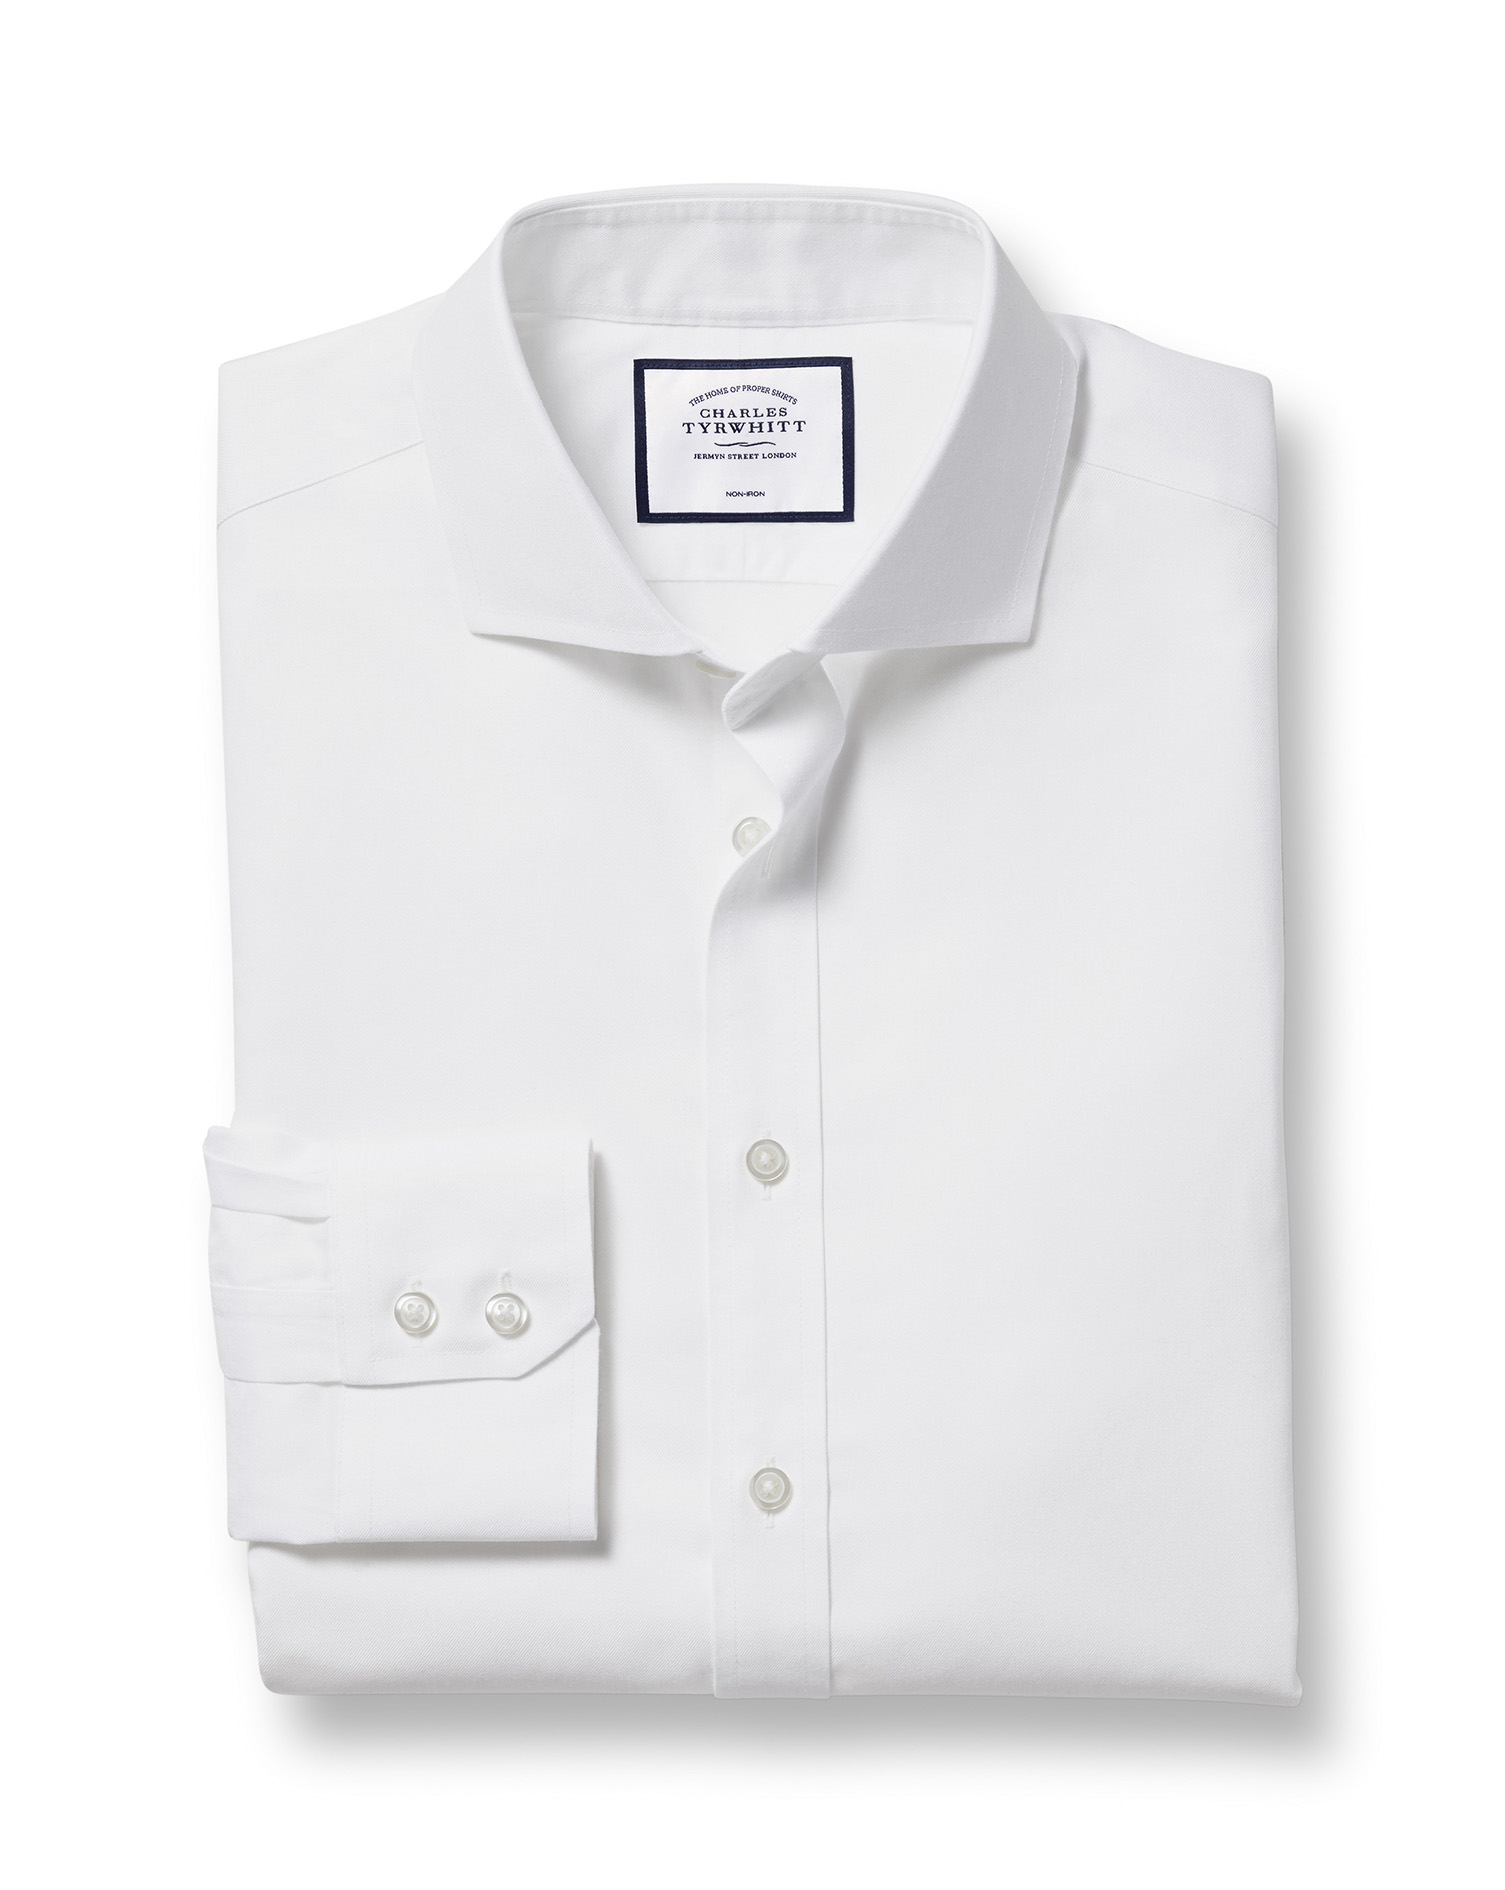 Slim Fit White Non-Iron Twill Extreme Cutaway Collar Cotton Formal Shirt Single Cuff Size 15.5/35 by